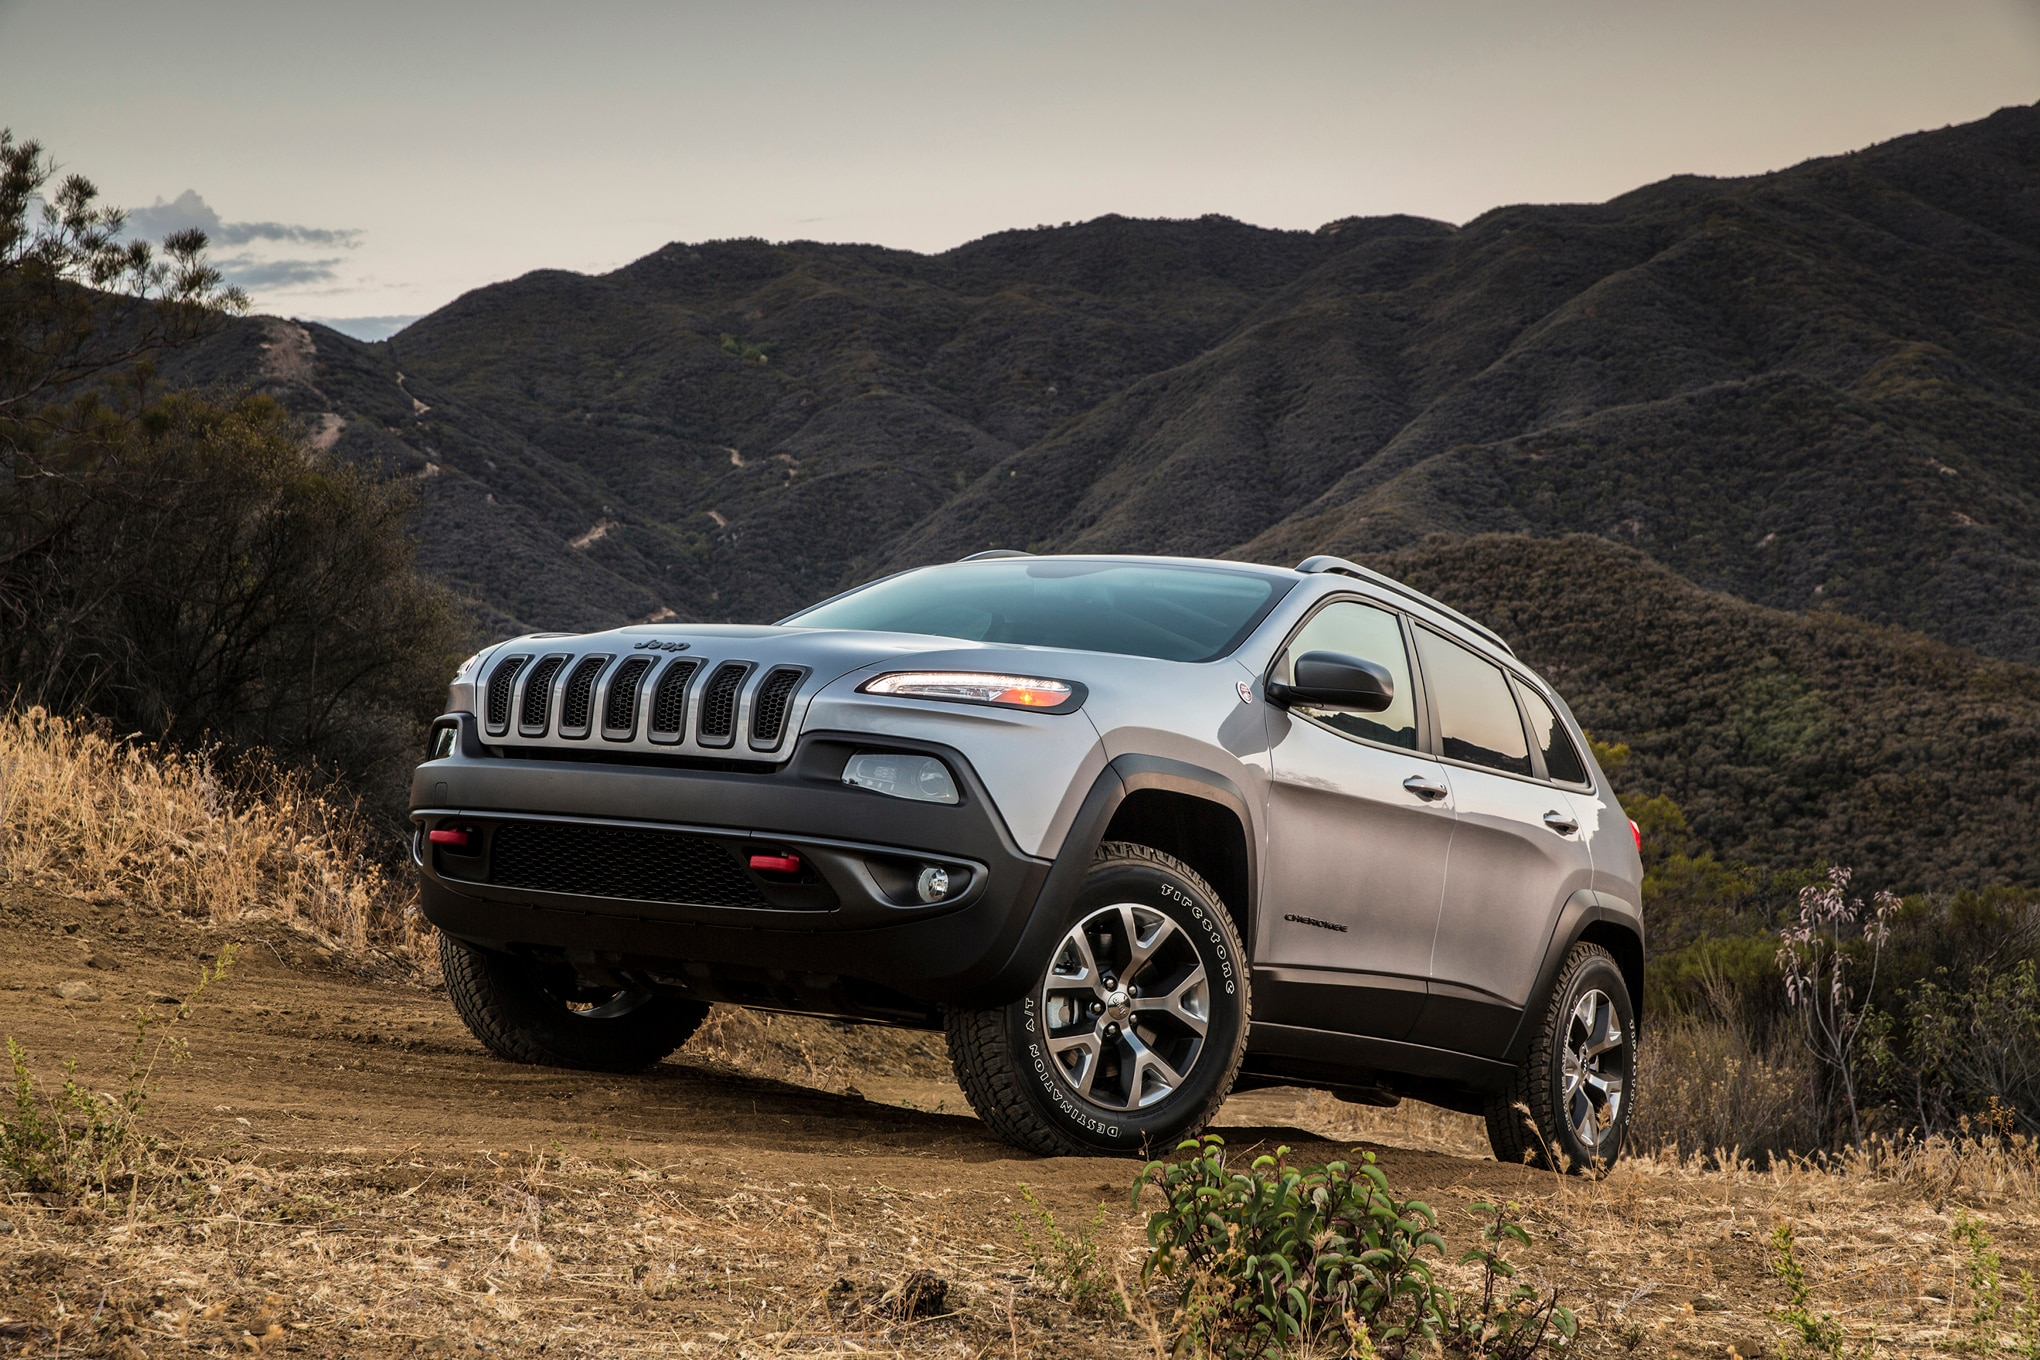 2015 Jeep Cherokee V 6 MPG Ratings Improve Thanks to Start Stop System